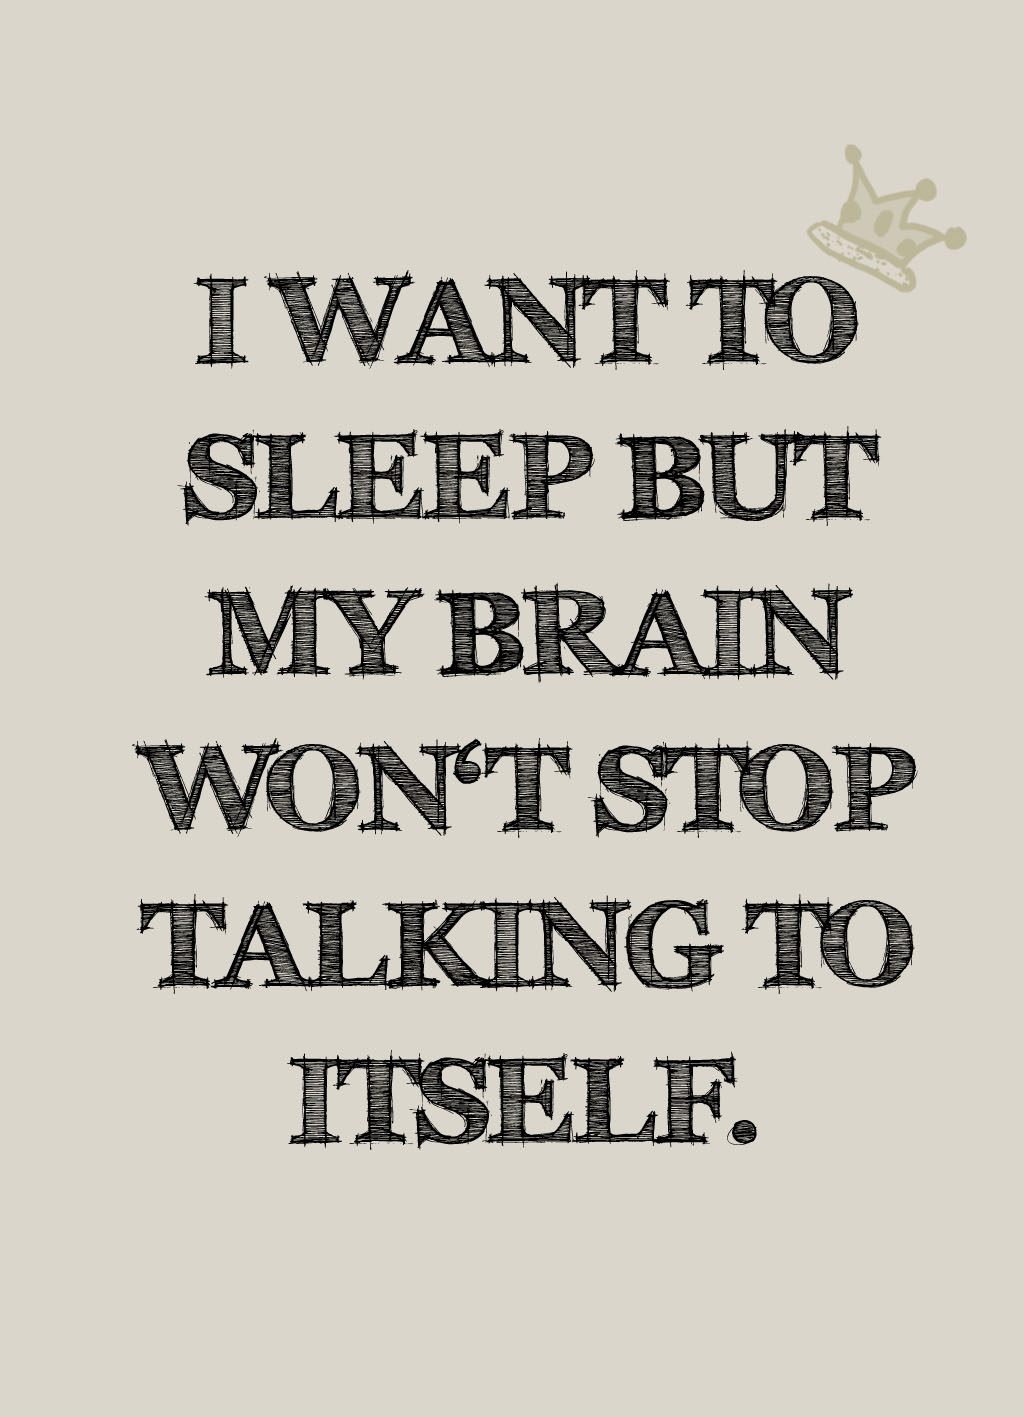 Quote of the Day :: I want to sleep but my brain won't stop talking to itself